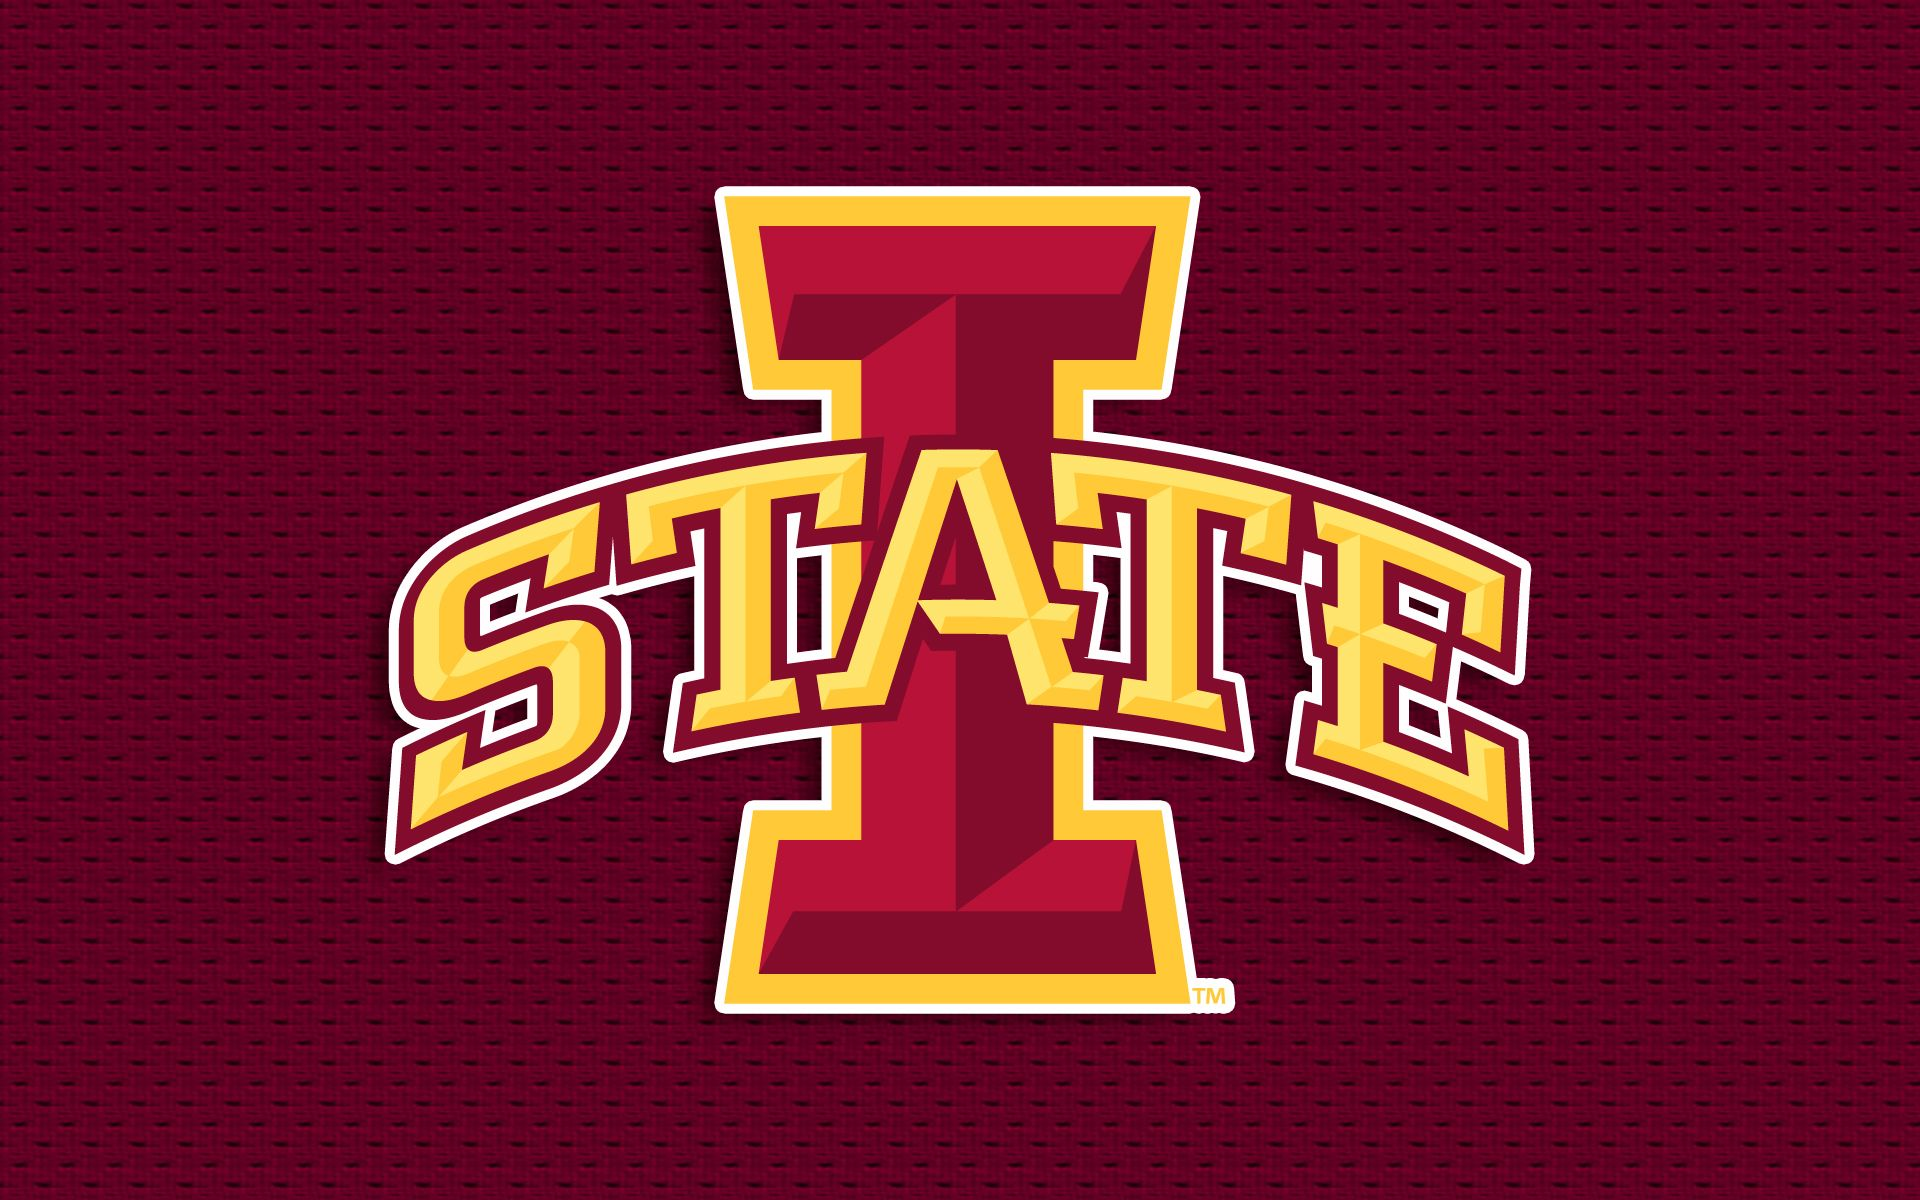 Iowa state university - Iowa State University Hd Wallpaper Wallpapers Pinterest Iowa State And Hd Wallpaper